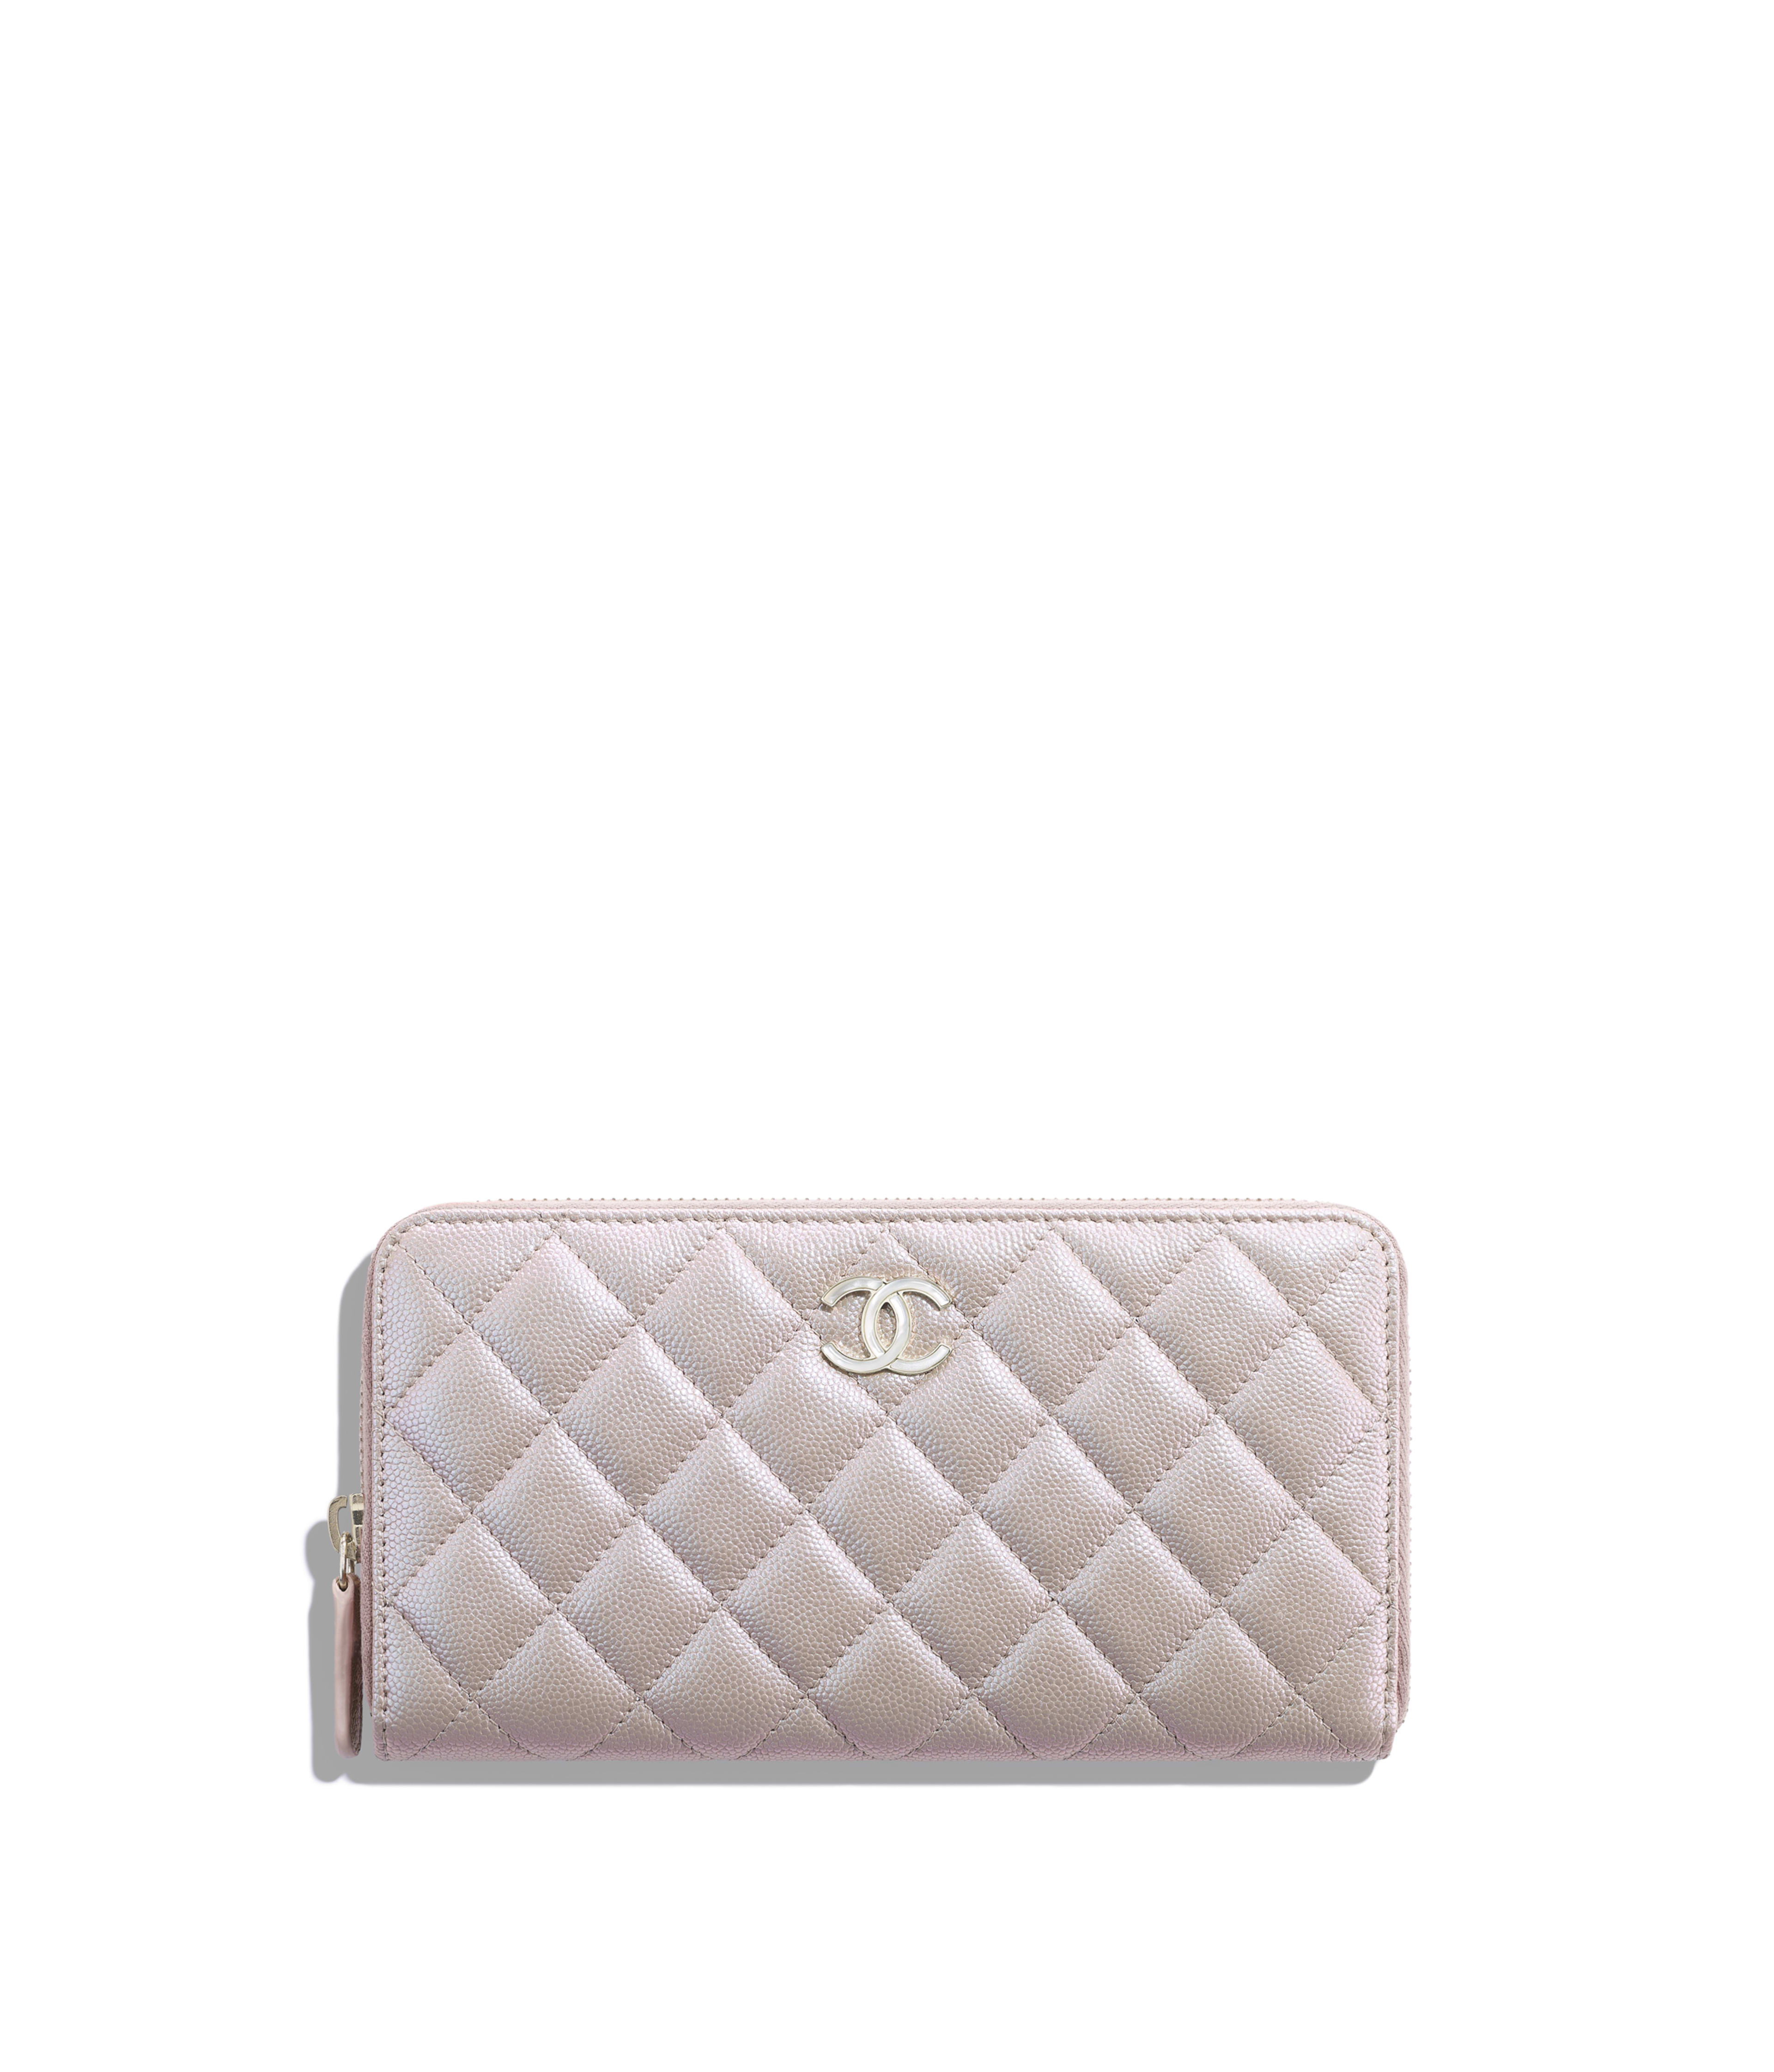 4731424cea42 Long Zipped Wallet Iridescent Grained Lambskin & Gold-Tone Metal, Beige  Ref. AP0313B00483N4312